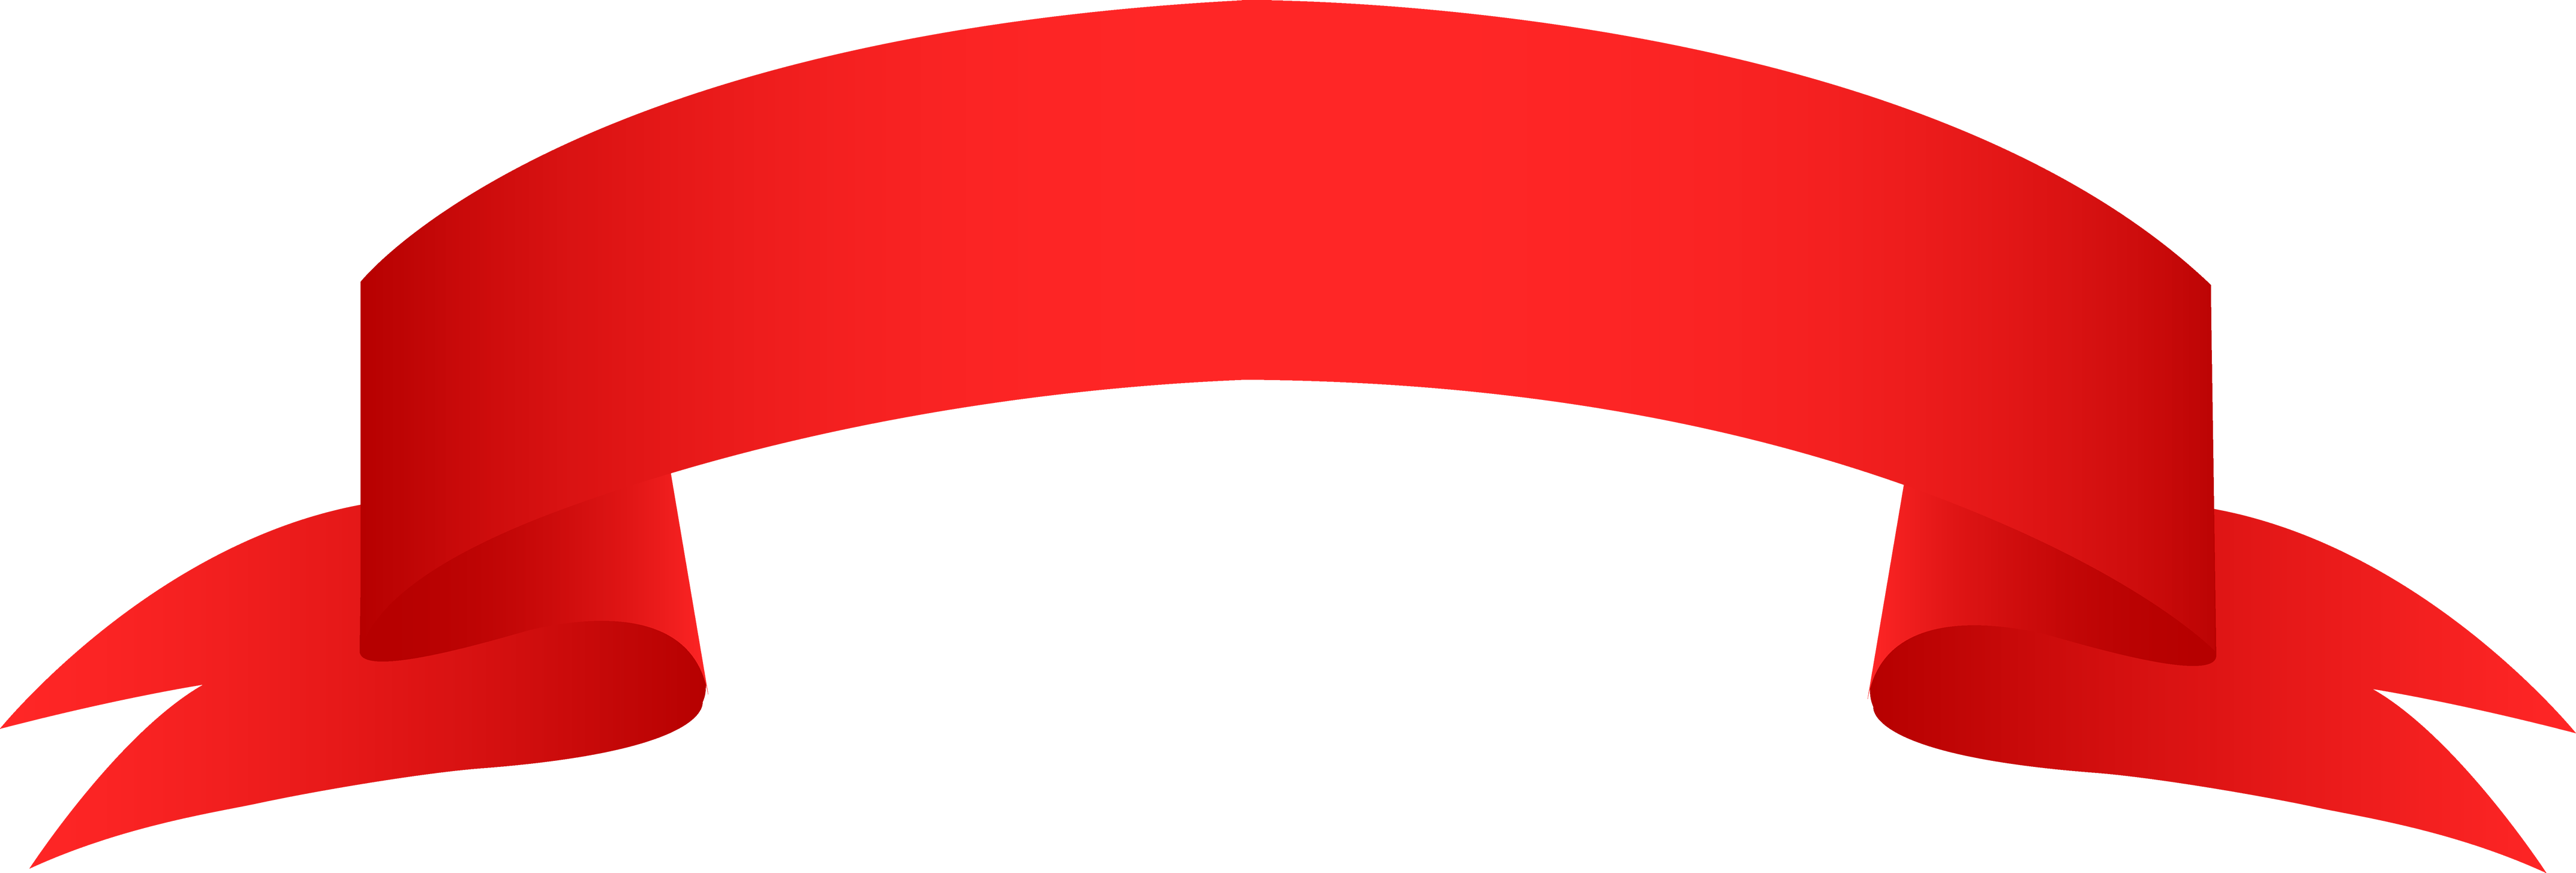 Red Ribbon PNG Image - PurePNG | Free transparent CC0 PNG ...